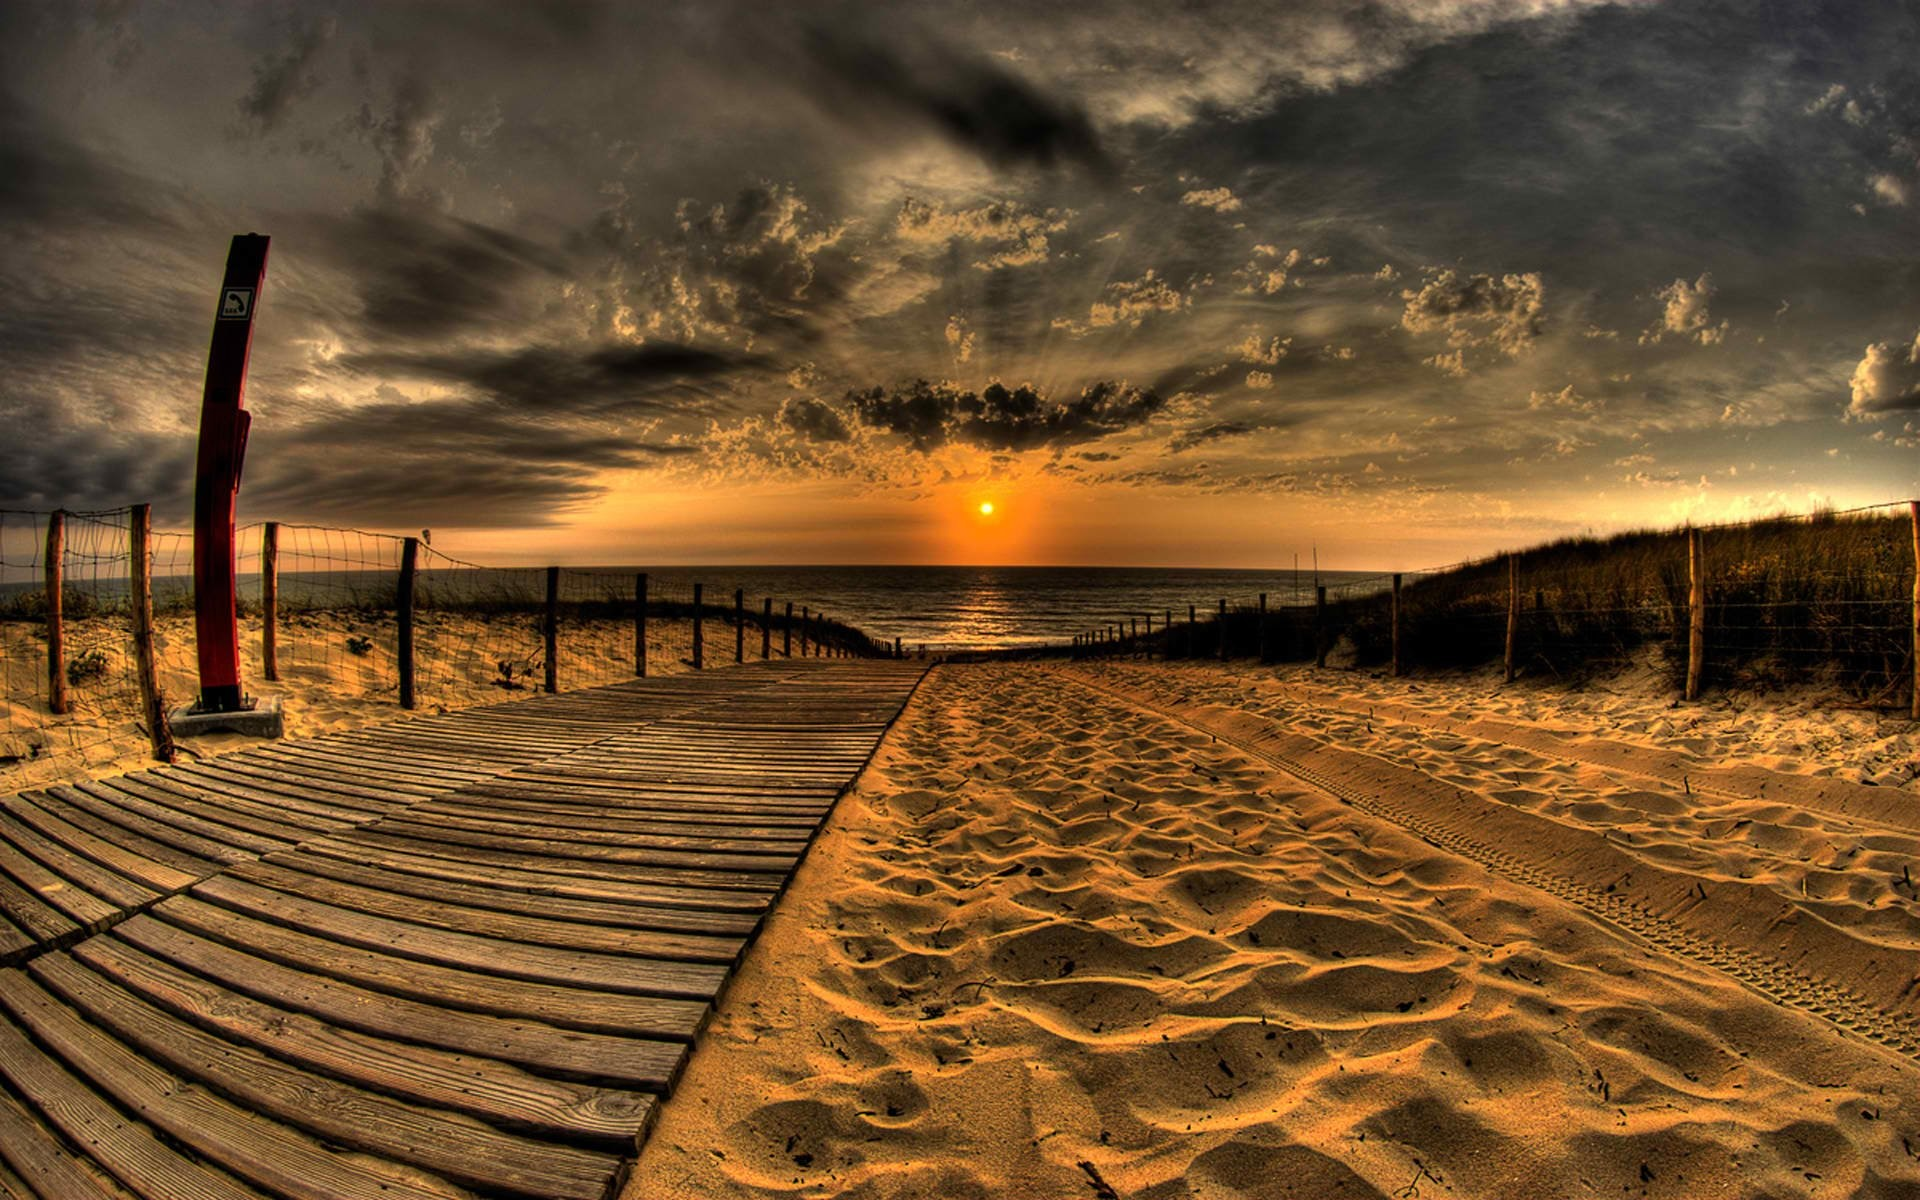 Res: 1920x1200, HD Wallpaper | Background Image ID:85305.  Photography Beach